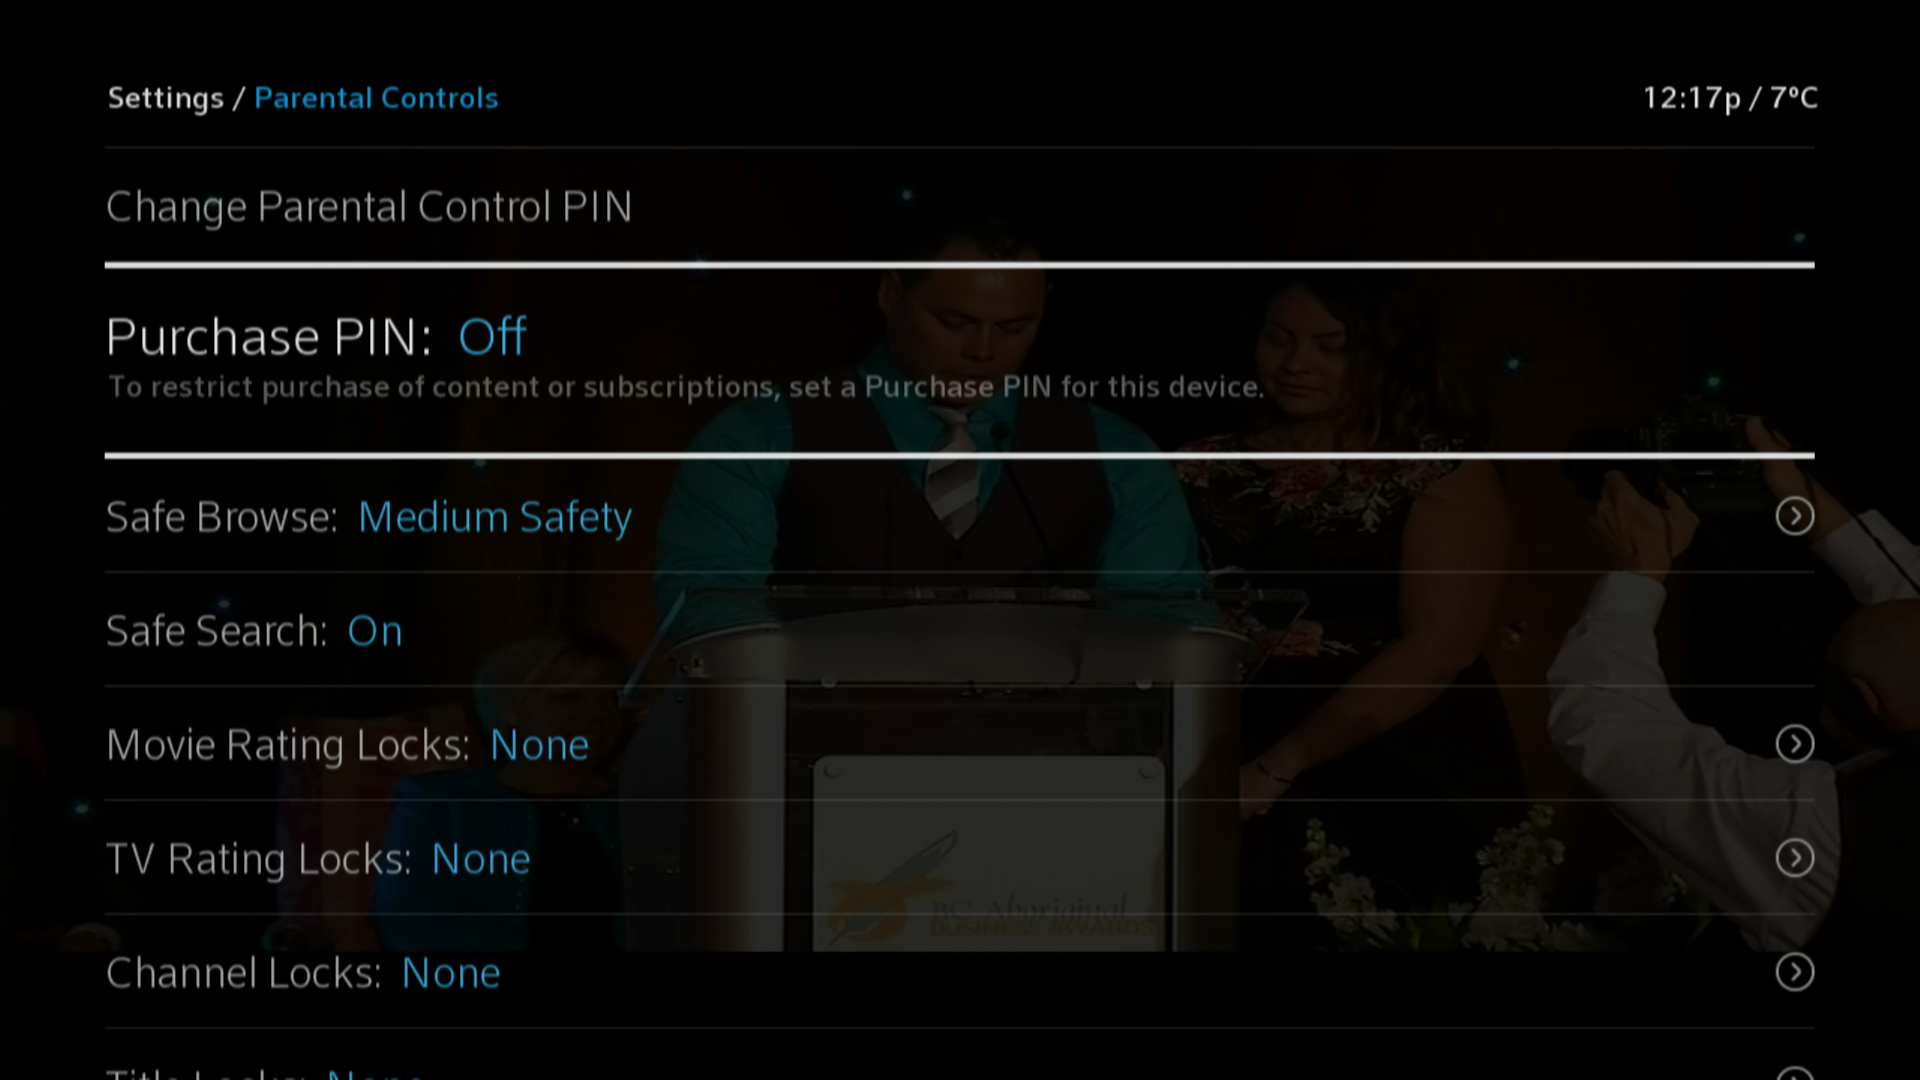 BlueSky Tv > Parental Controls > Purchase Pin Off